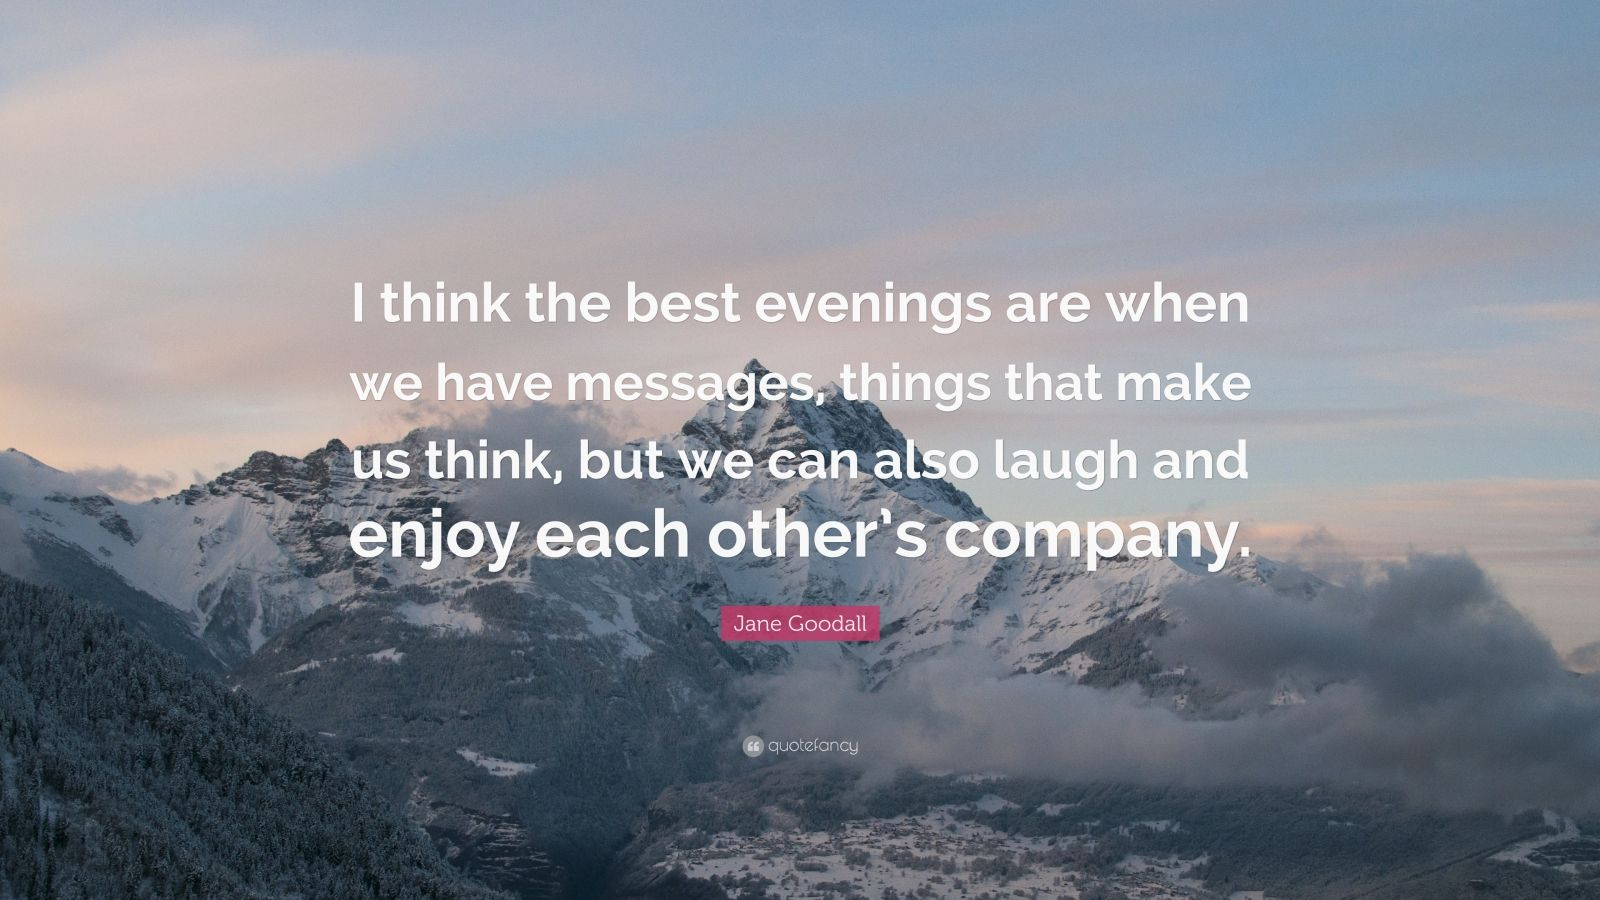 """Jane Goodall Quote: """"I think the best evenings are when we have messages, things that make us think, but we can also laugh and enjoy each other's company."""""""